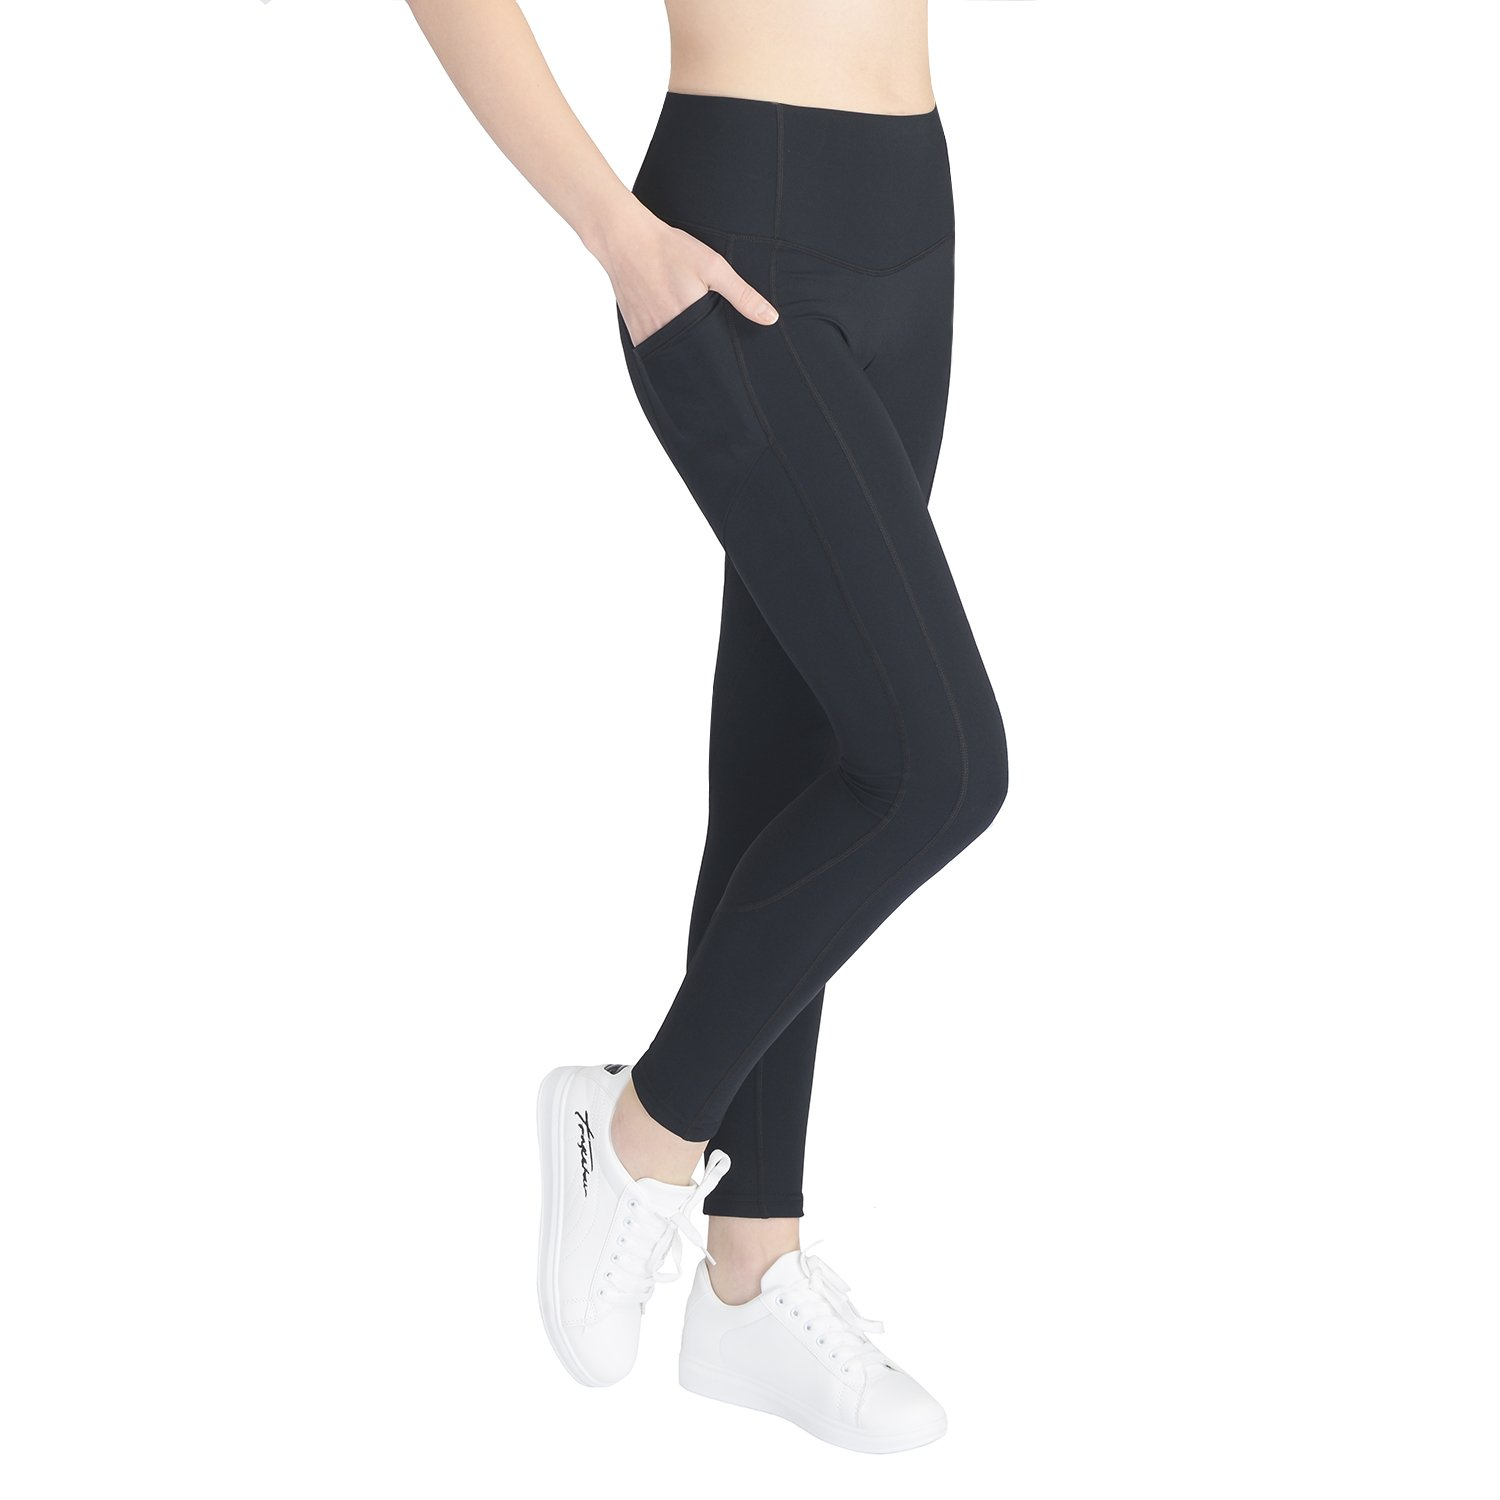 934ed11e9a8 4-way stretch fabric with High Waist Tummy Control   Hidden Pockets workout  leggings. Fits for variety of exercises or everyday use. ANKLE YOGA PANTS   ...